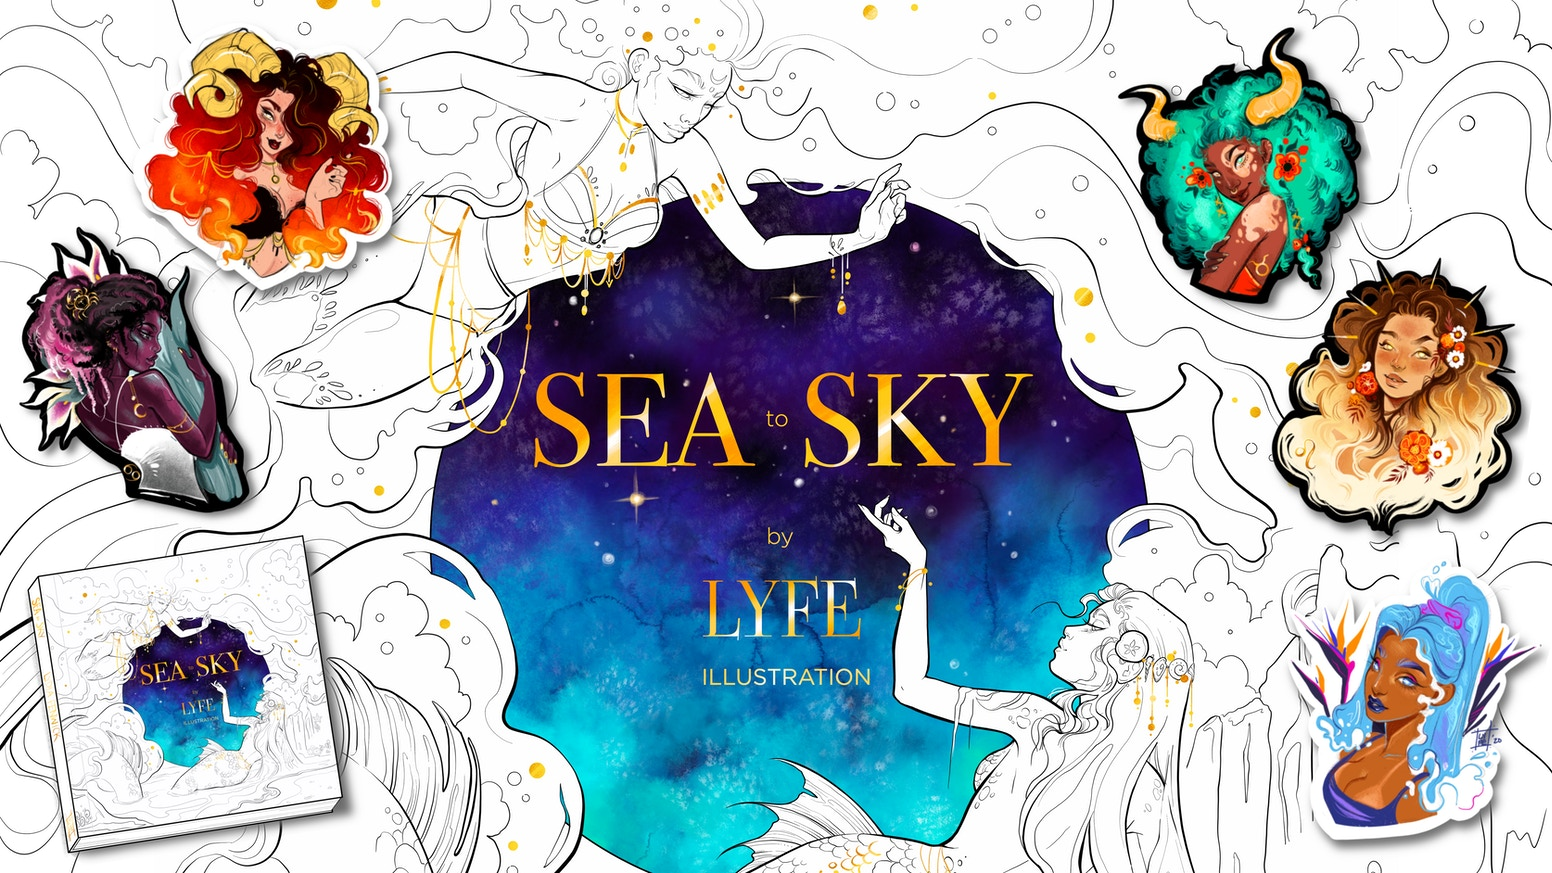 A beautifully detailed coloring art book filled with astrology art work, prints, stickers, and more shiny goods by Lyfe Illustration